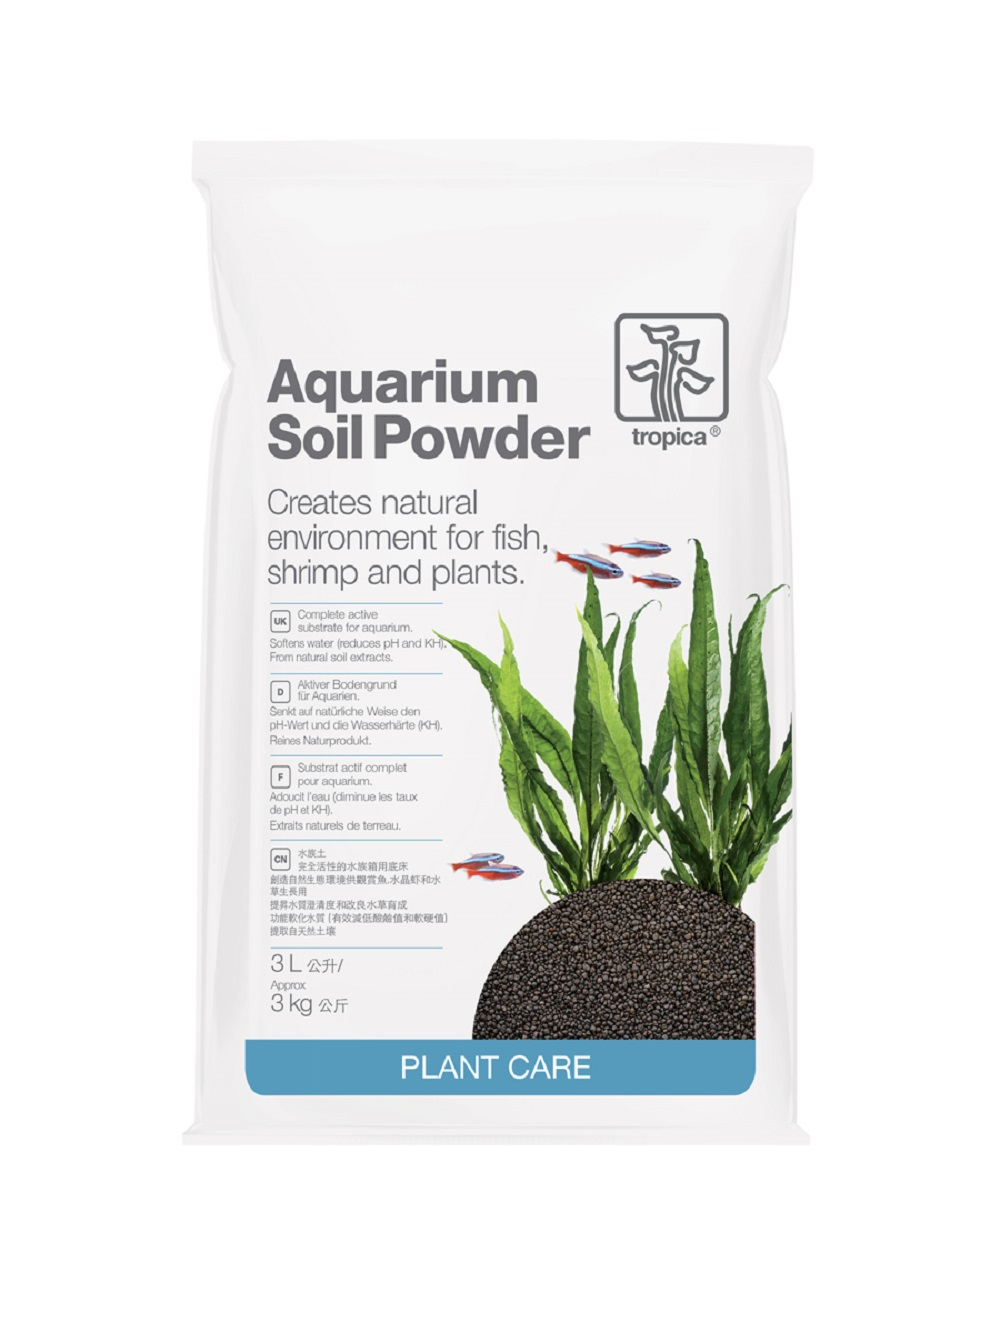 Tropica Aquarium Soil Powder 3 Litre